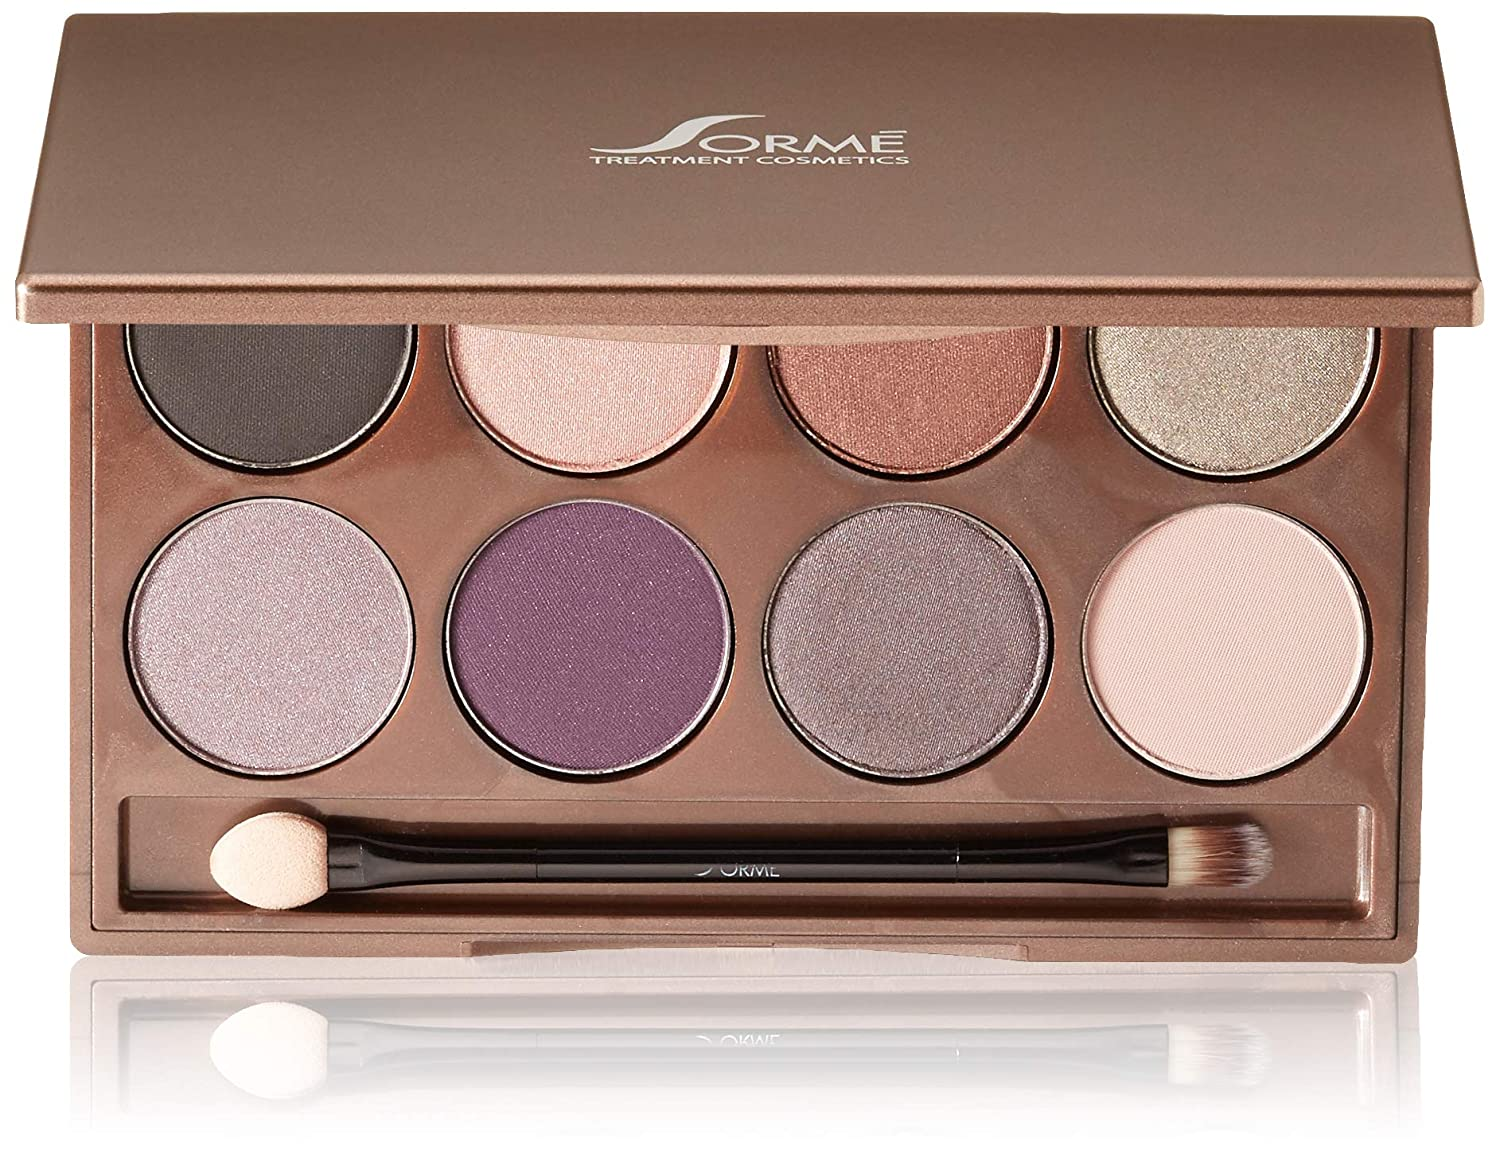 Sorme Cosmetics Collection Eyeshadow Palette, Cool Hues, 0.64 Ounce